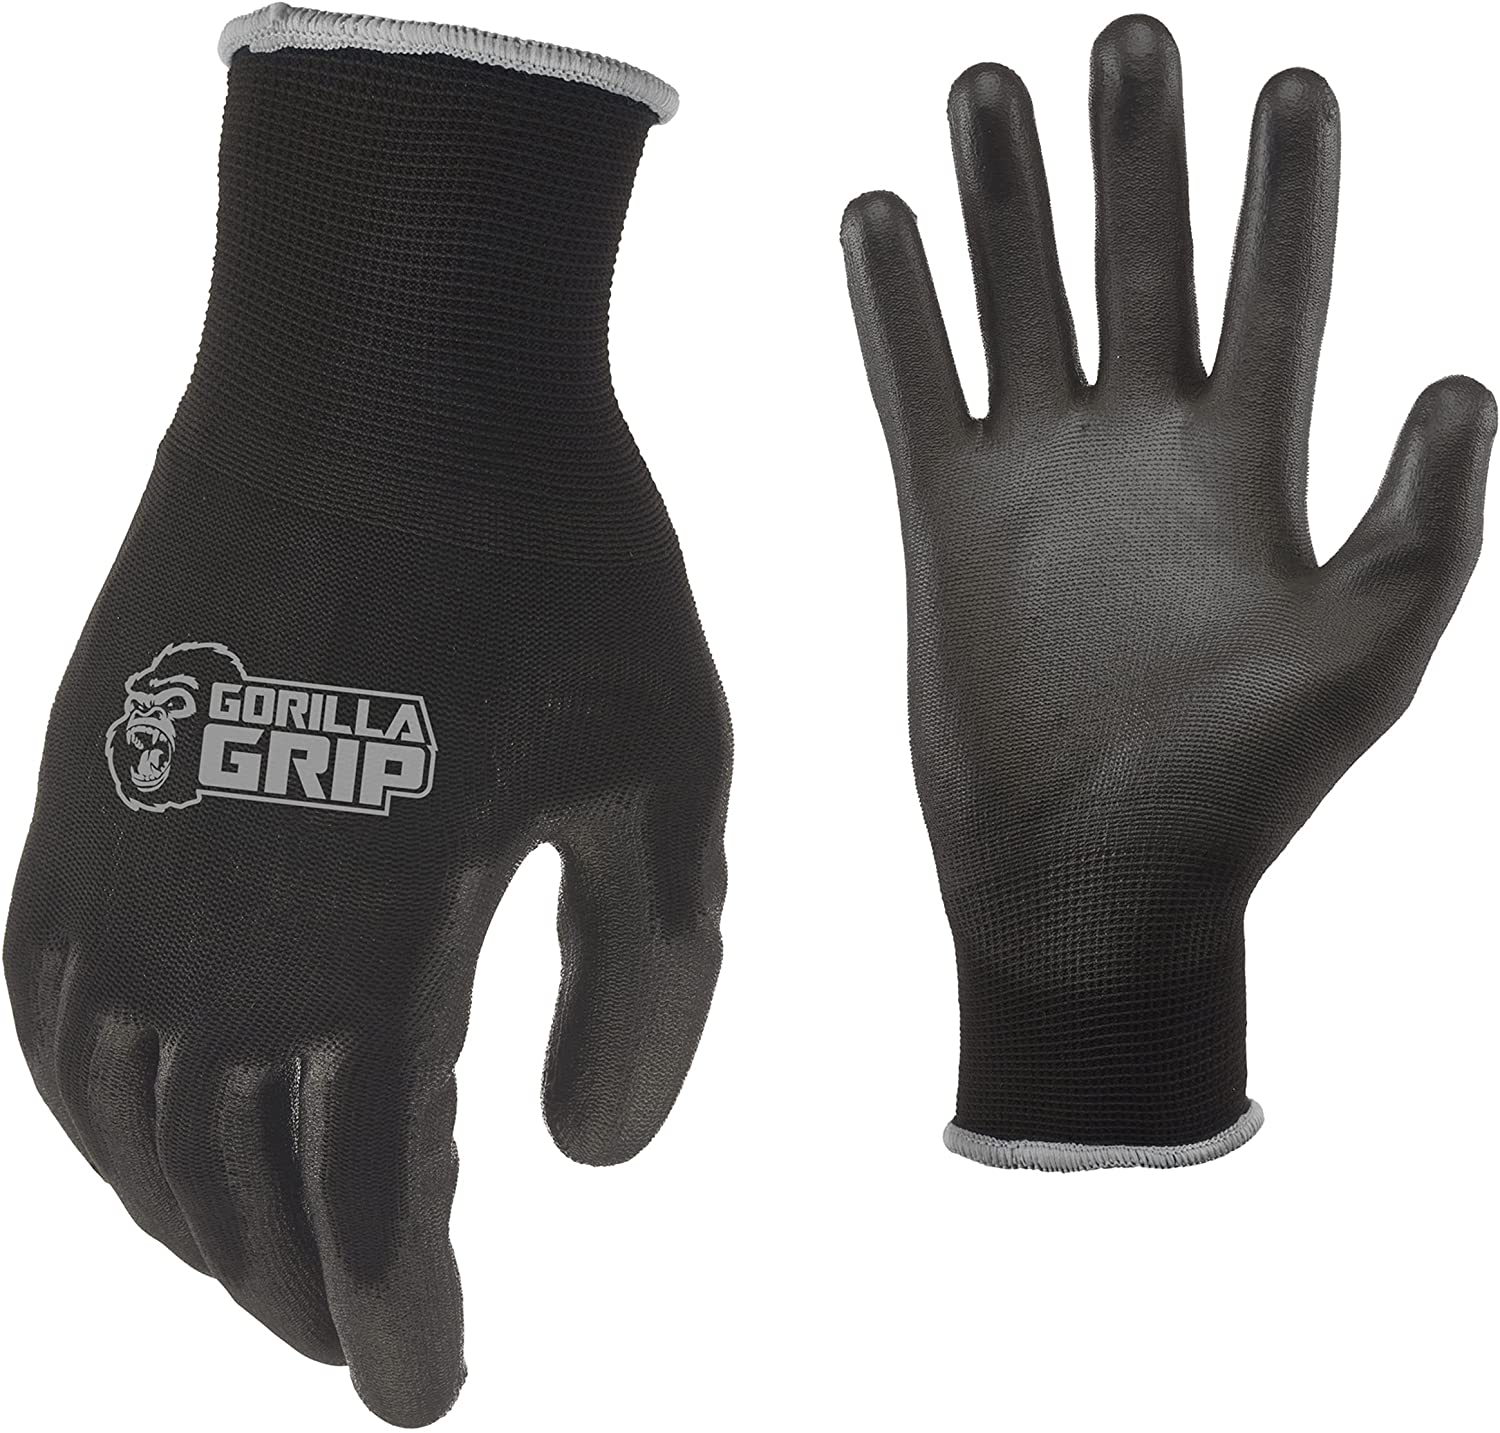 Gorilla Grip Slip Resistant All Work Fees free Purpose 2021 spring and summer new Gloves